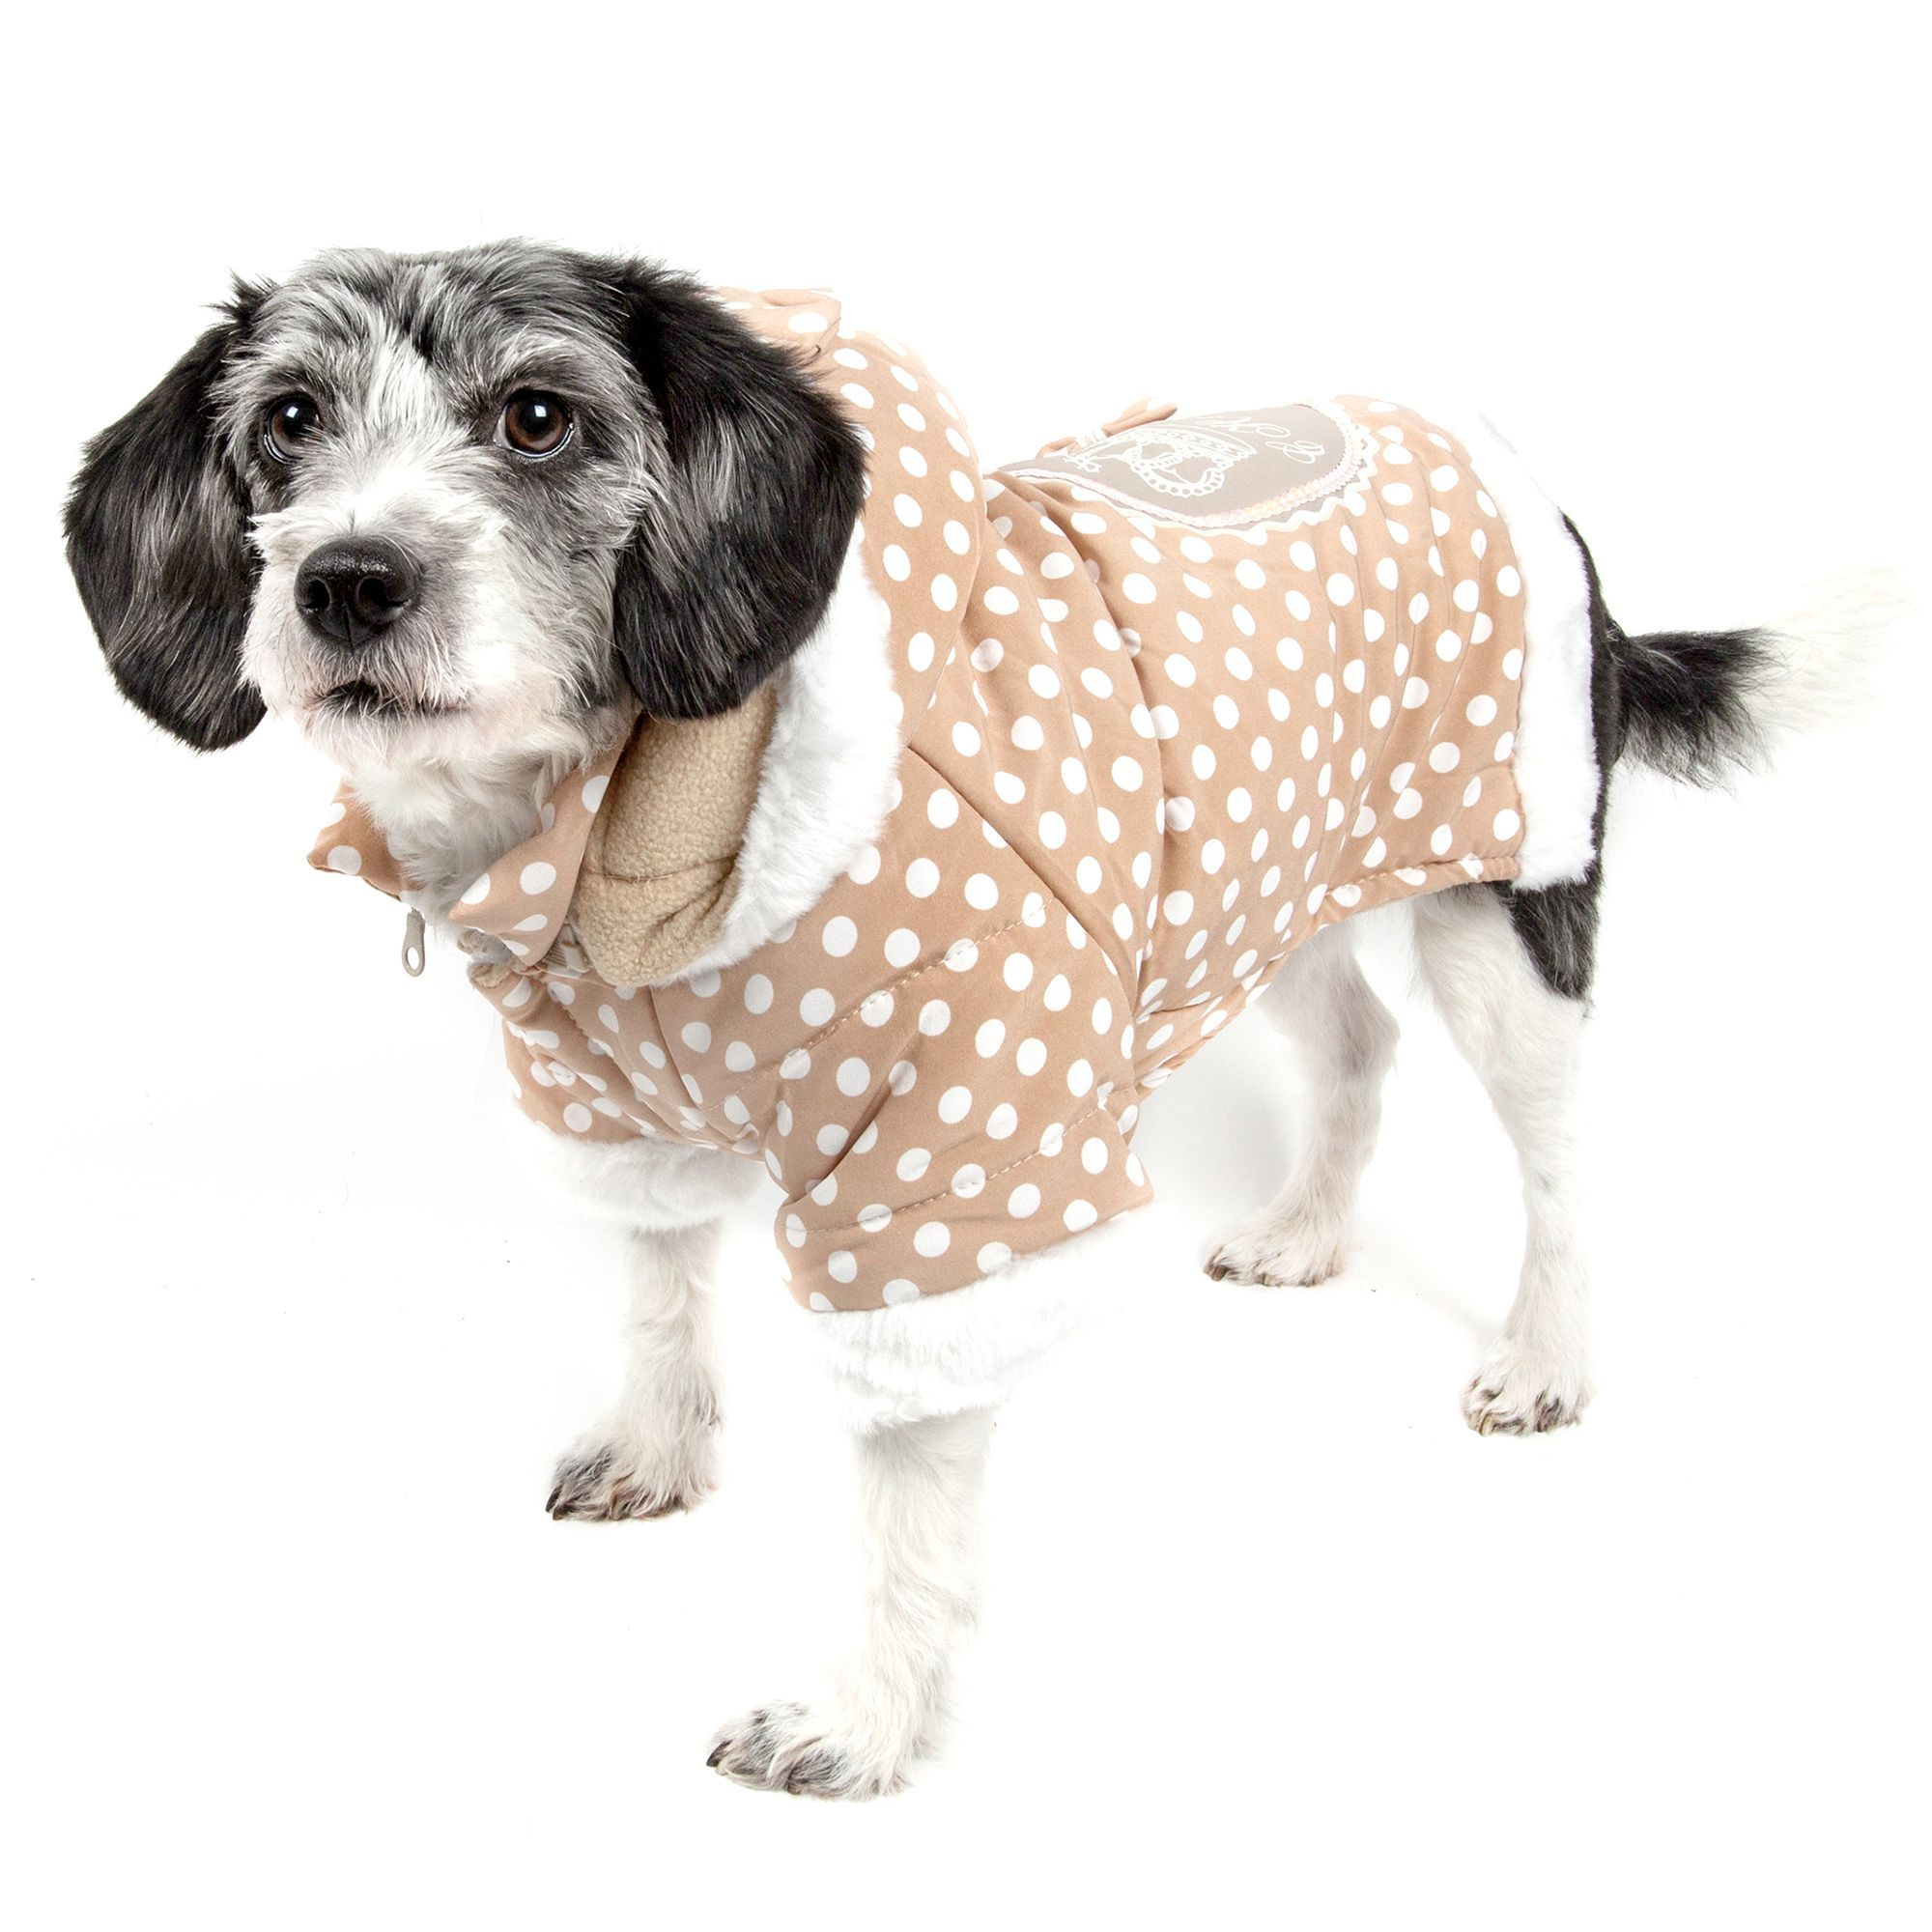 Pet Life Polka Dot Hooded Sweater size Small, Top Paw